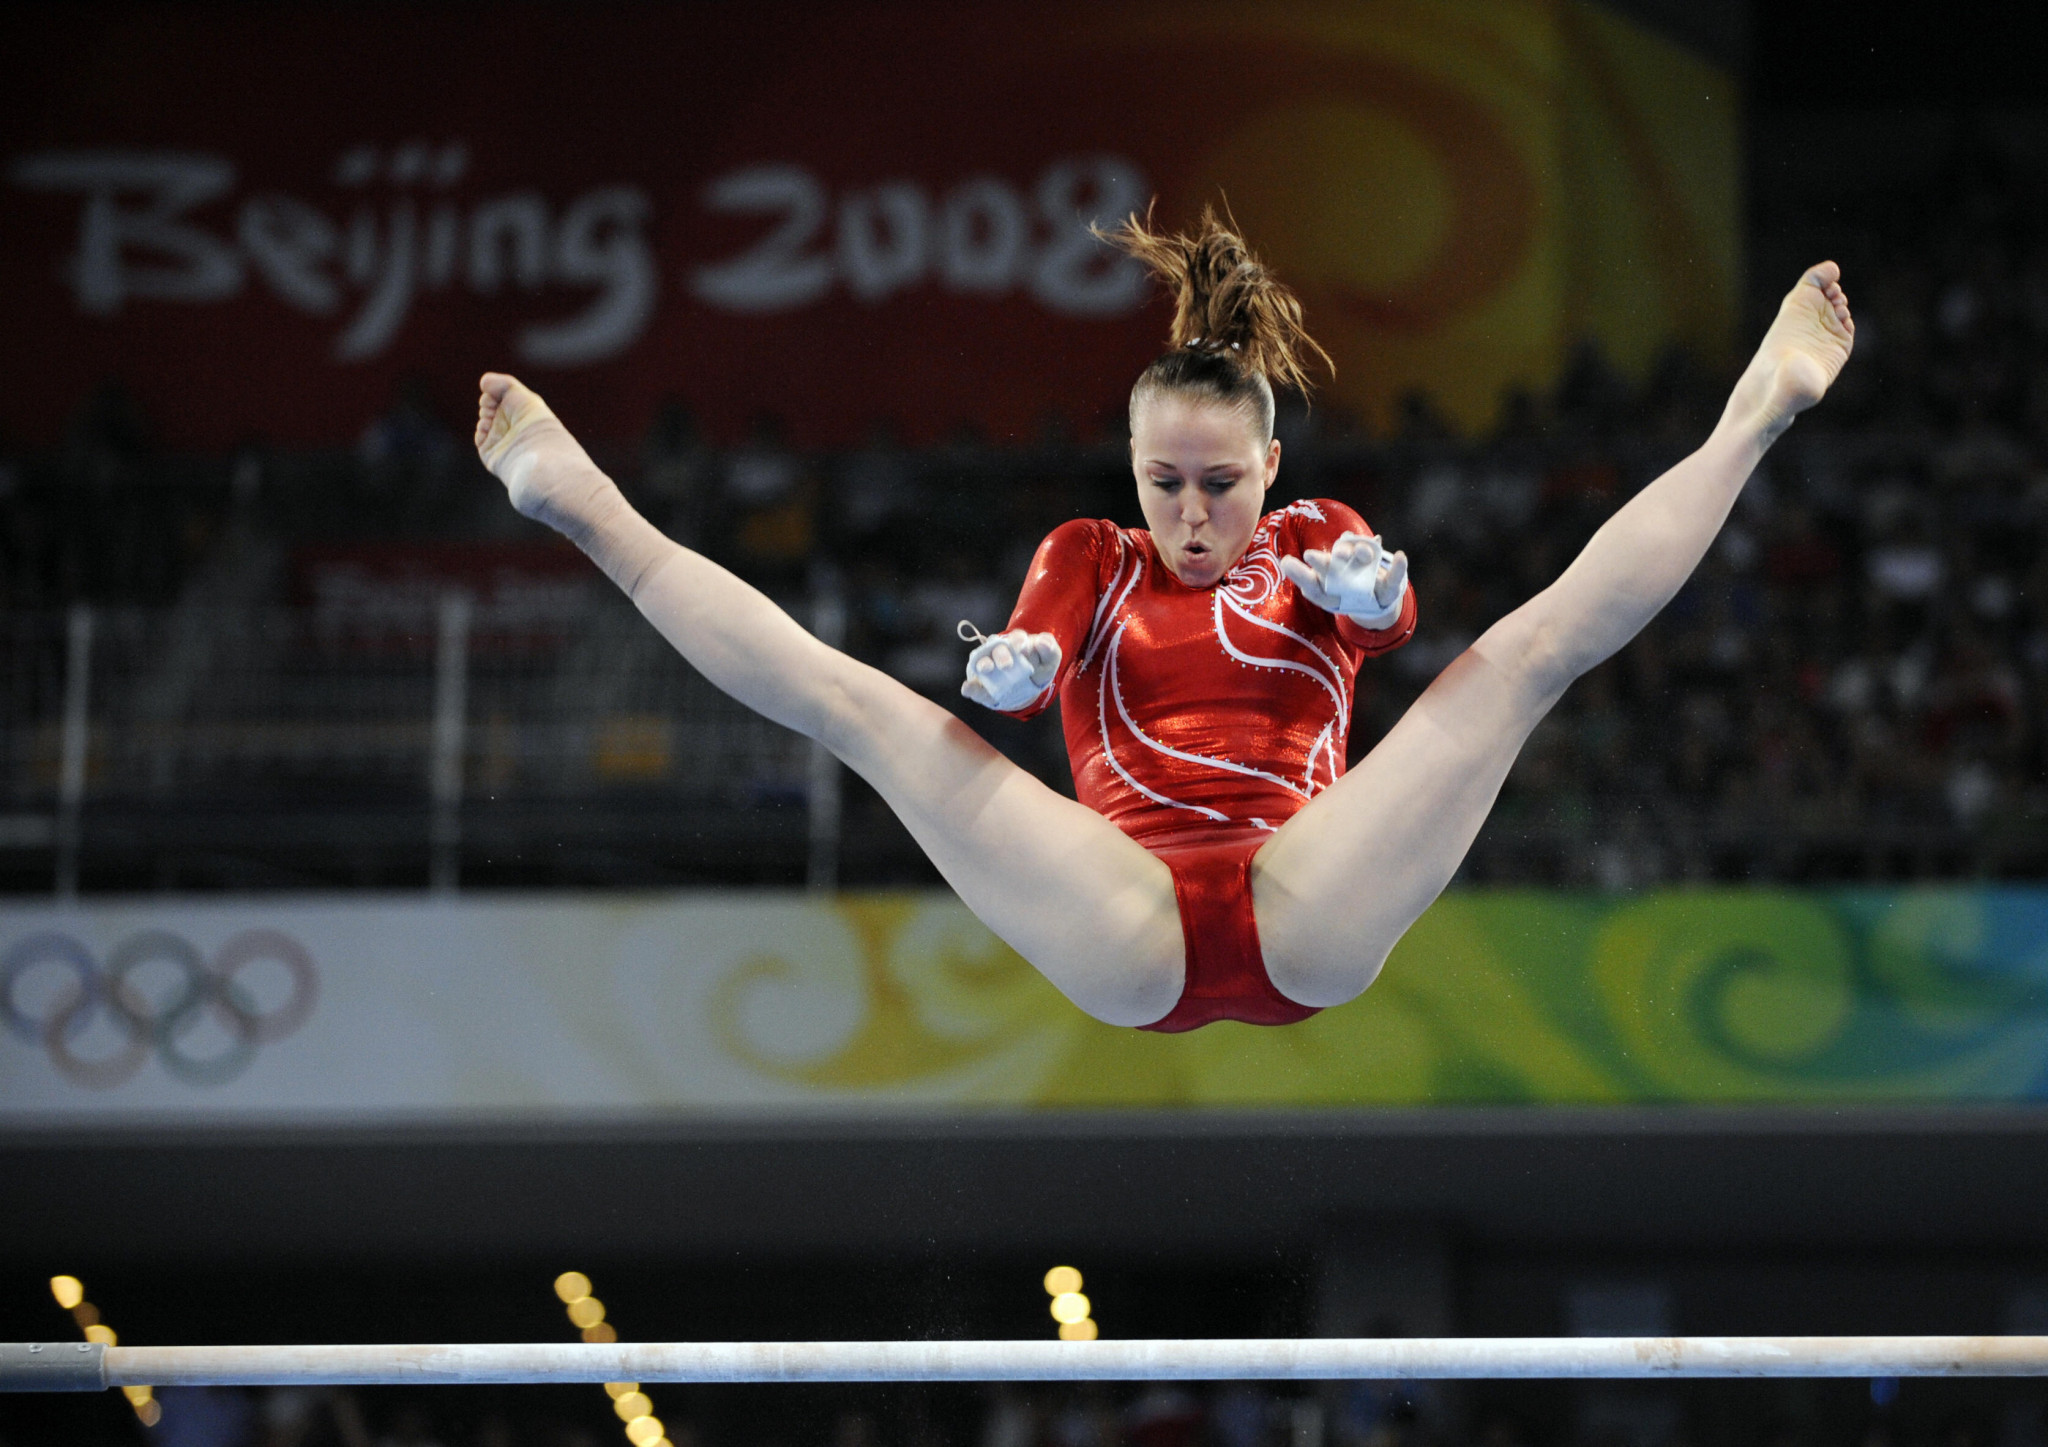 Chellsie Memmel won team silver at the 2008 Olympic Games in Beijing ©Getty Images